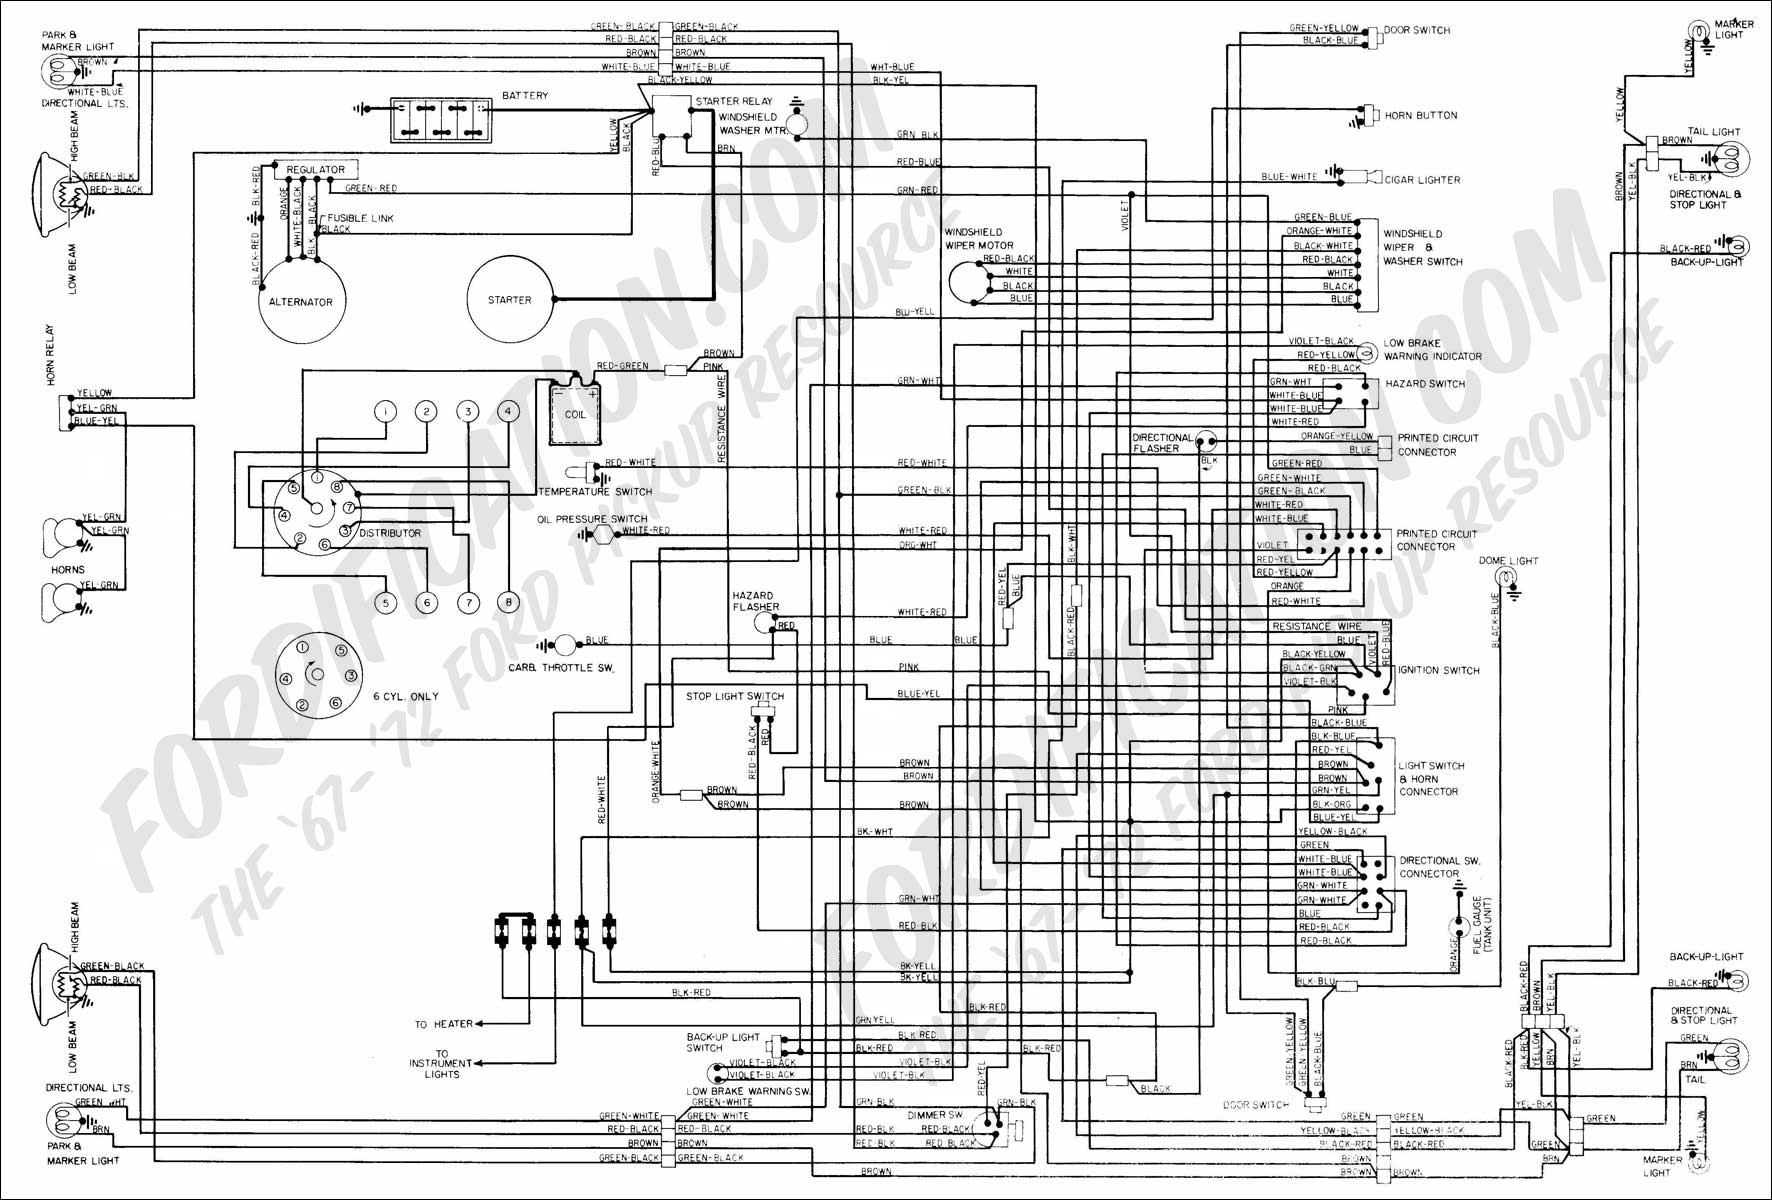 2008 Ford E350 Radio Wiring Diagram Worksheet And Mustang Truck Diagrams Detailed Schematics Rh Antonartgallery Com Ranger